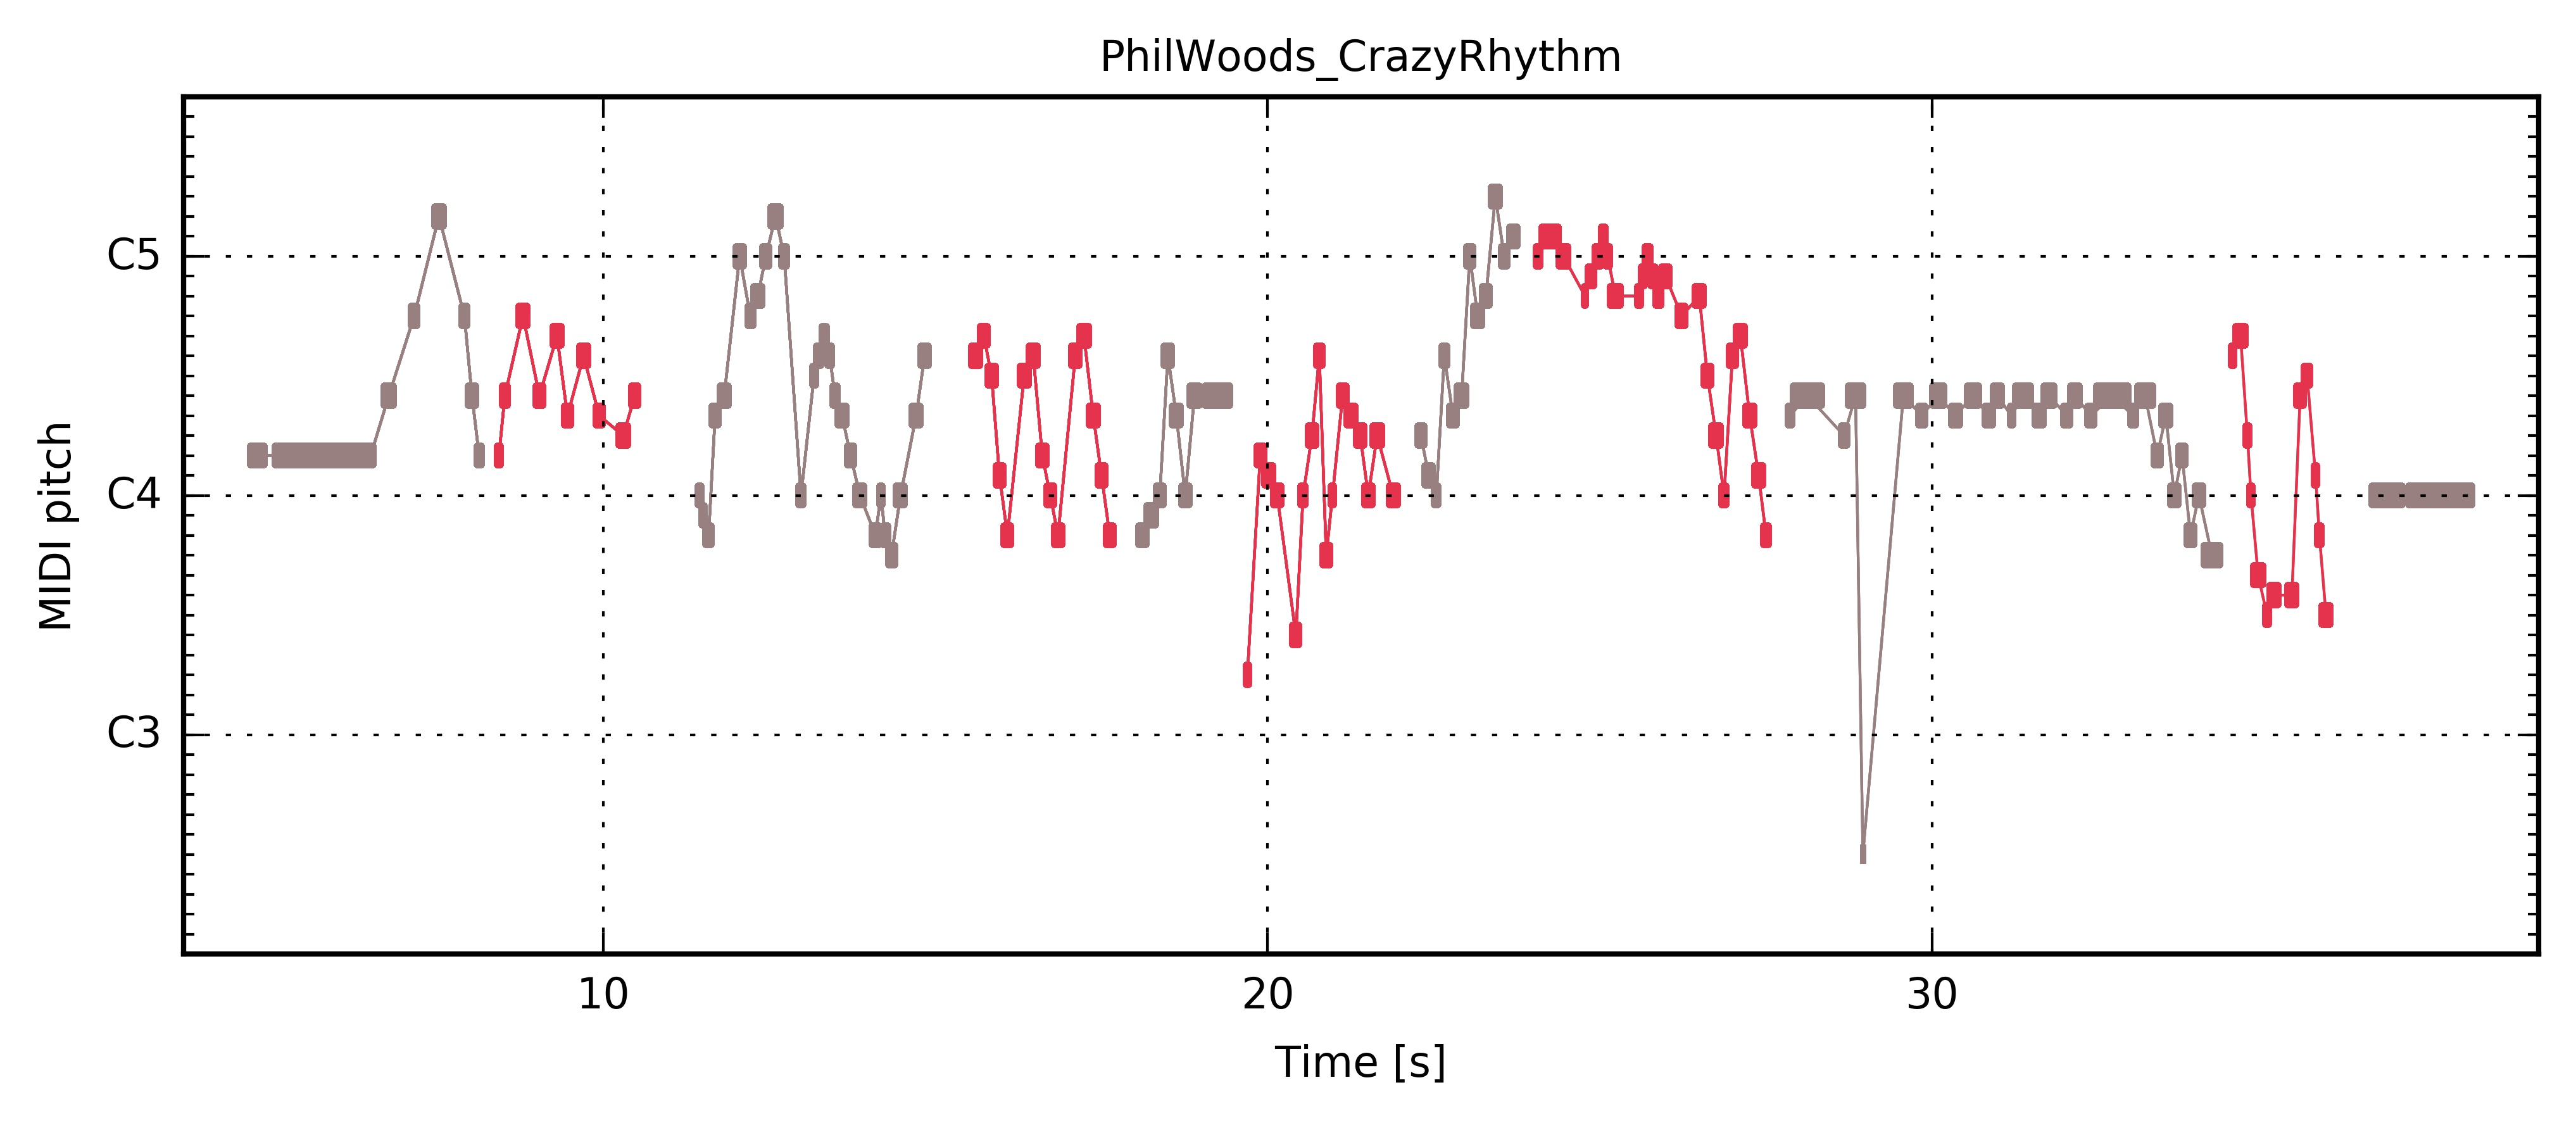 ../../_images/PianoRoll_PhilWoods_CrazyRhythm.jpg